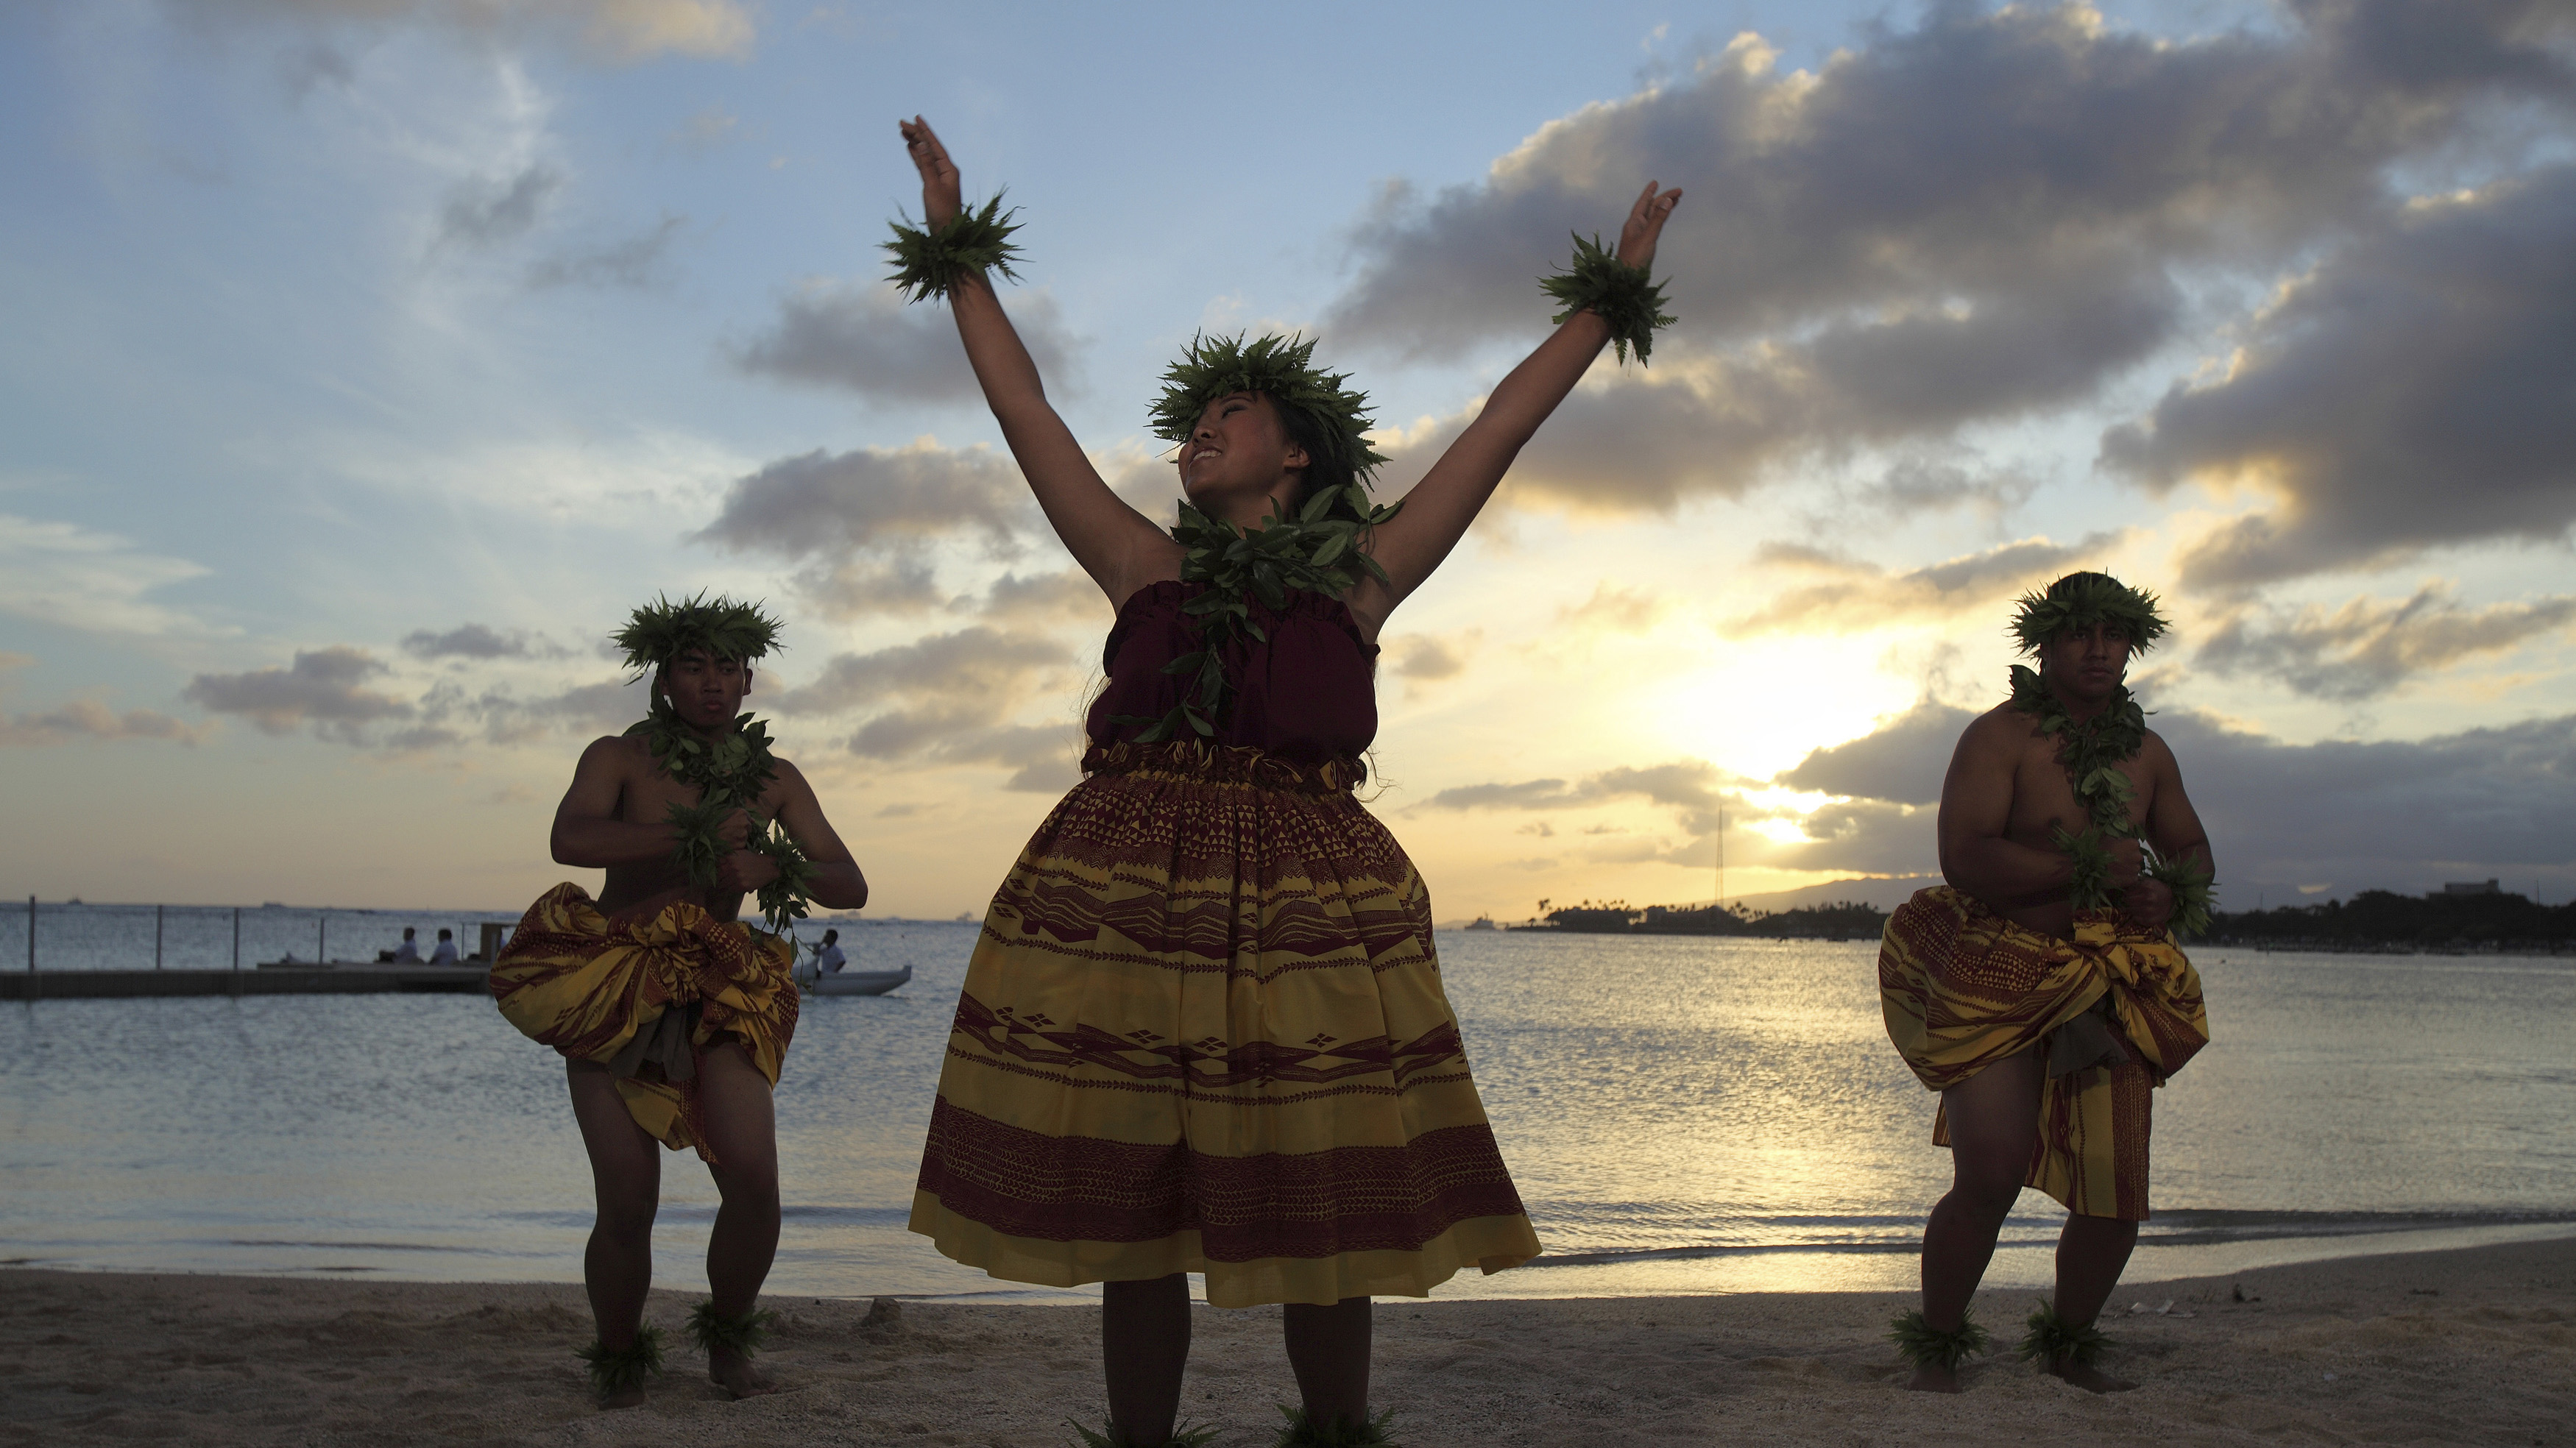 Hula dancers perform during the Na Lei Aloha Lantern Floating event held by the Shinnyo-en Buddhist organization at Ala Moana beach park on Memorial Day in Honolulu, Hawaii, May 28, 2012.The event is held in honor of those killed by war, natural disasters and health reasons. REUTERS/Hugh Gentry (UNITED STATES - Tags: ANNIVERSARY SOCIETY) - GM1E85T1D9E01